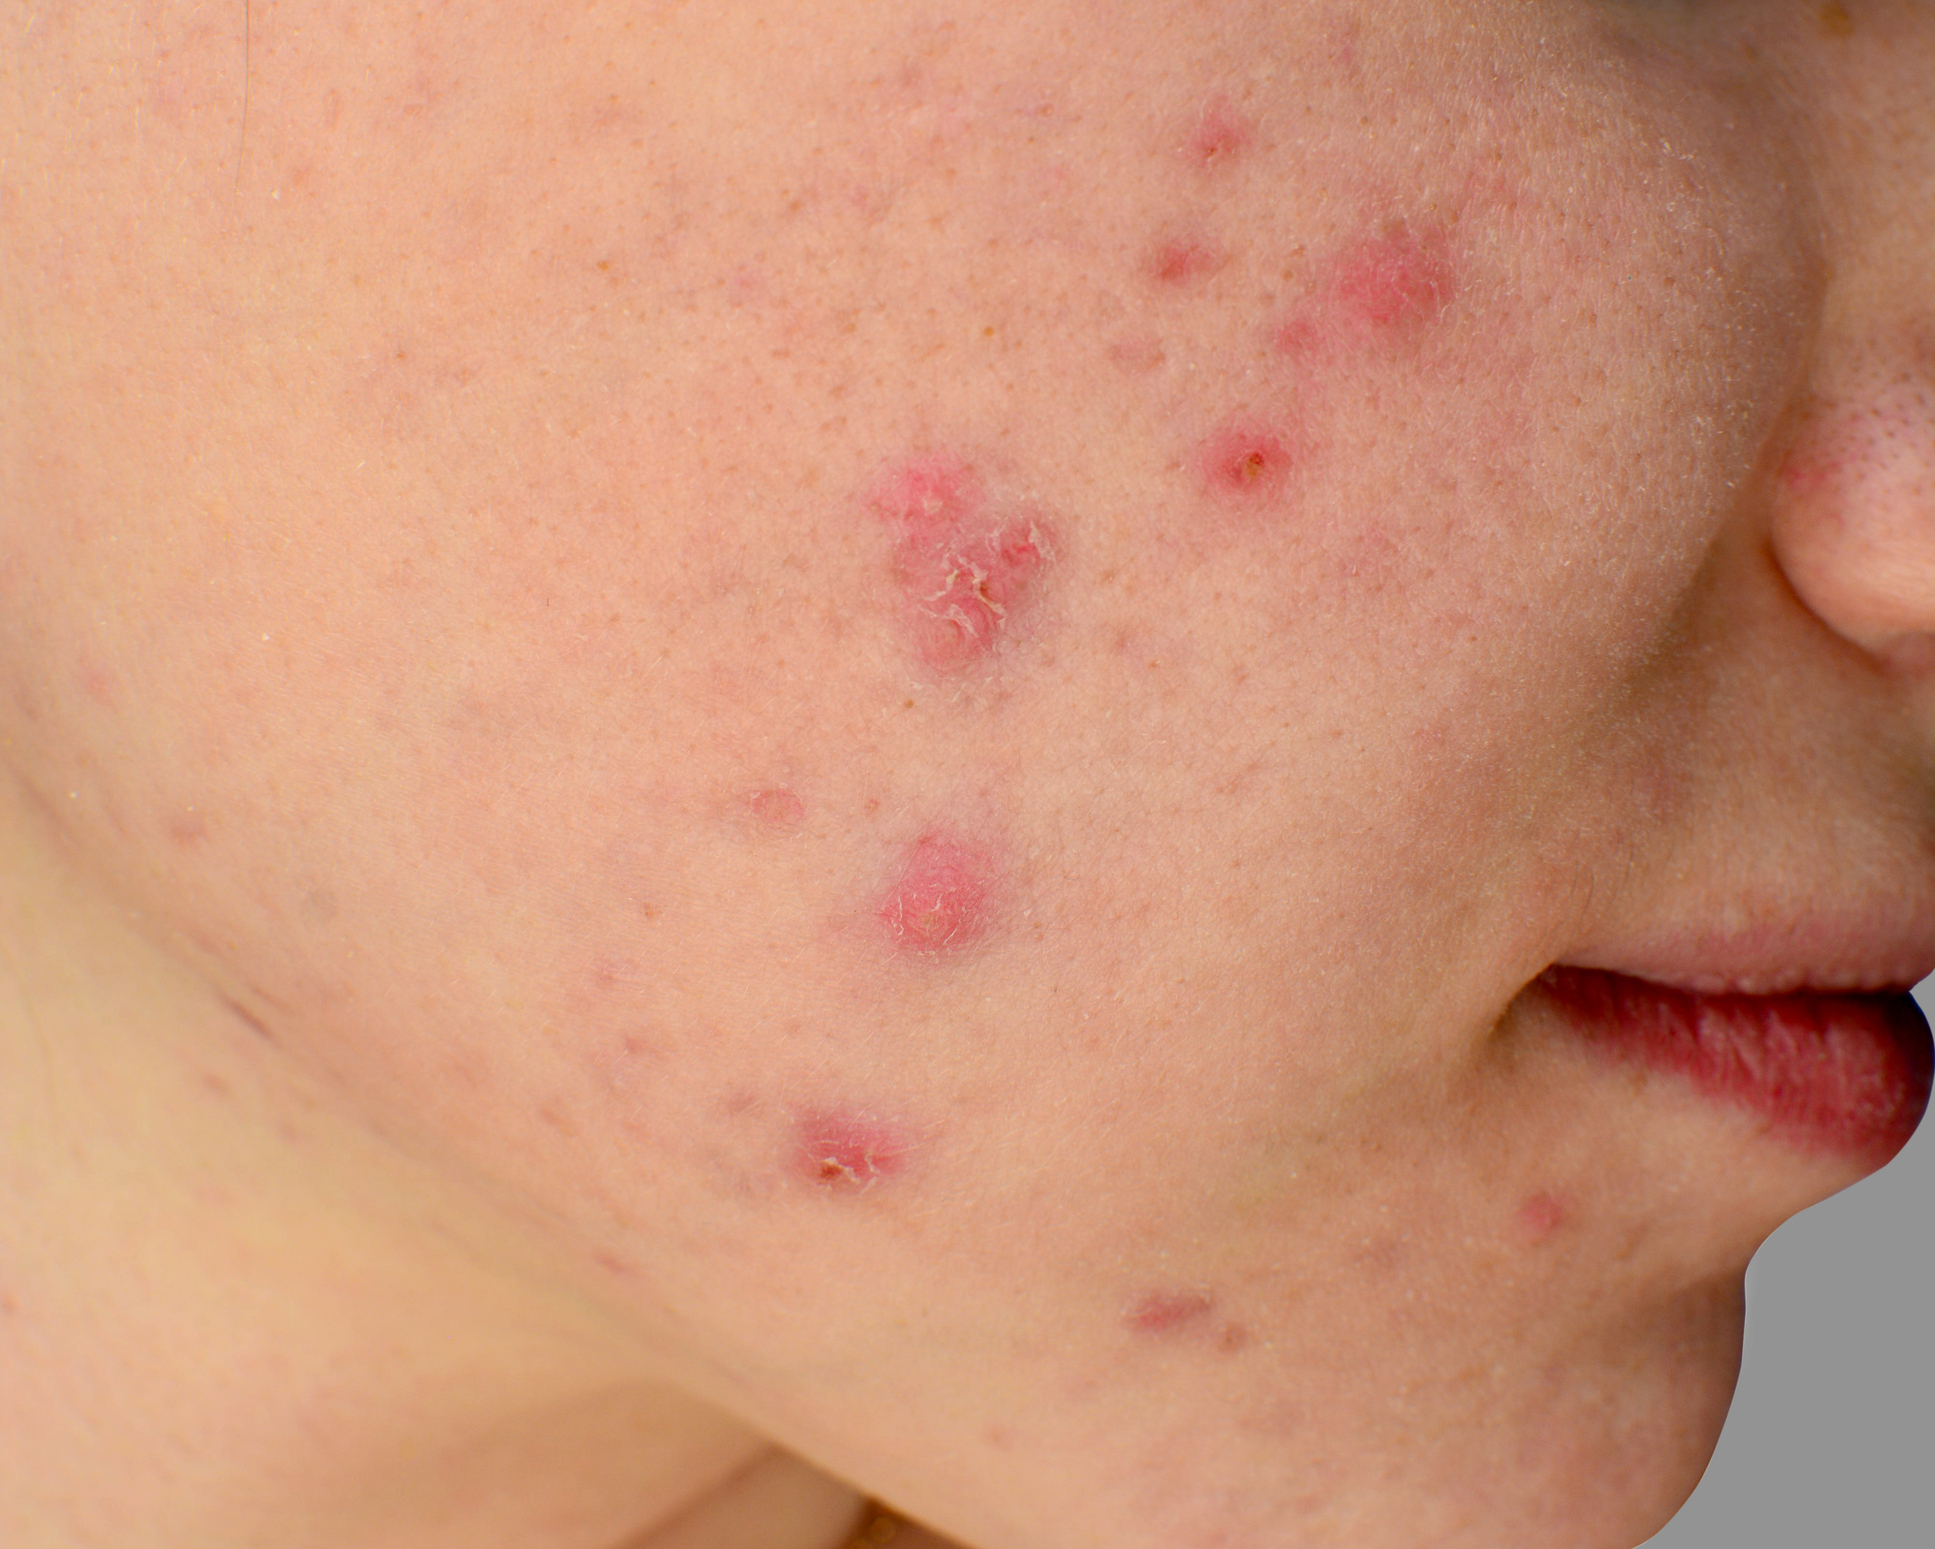 Acne is a common skin condition. At Hazelhill Family Practice we have extensive experience in treating acne.